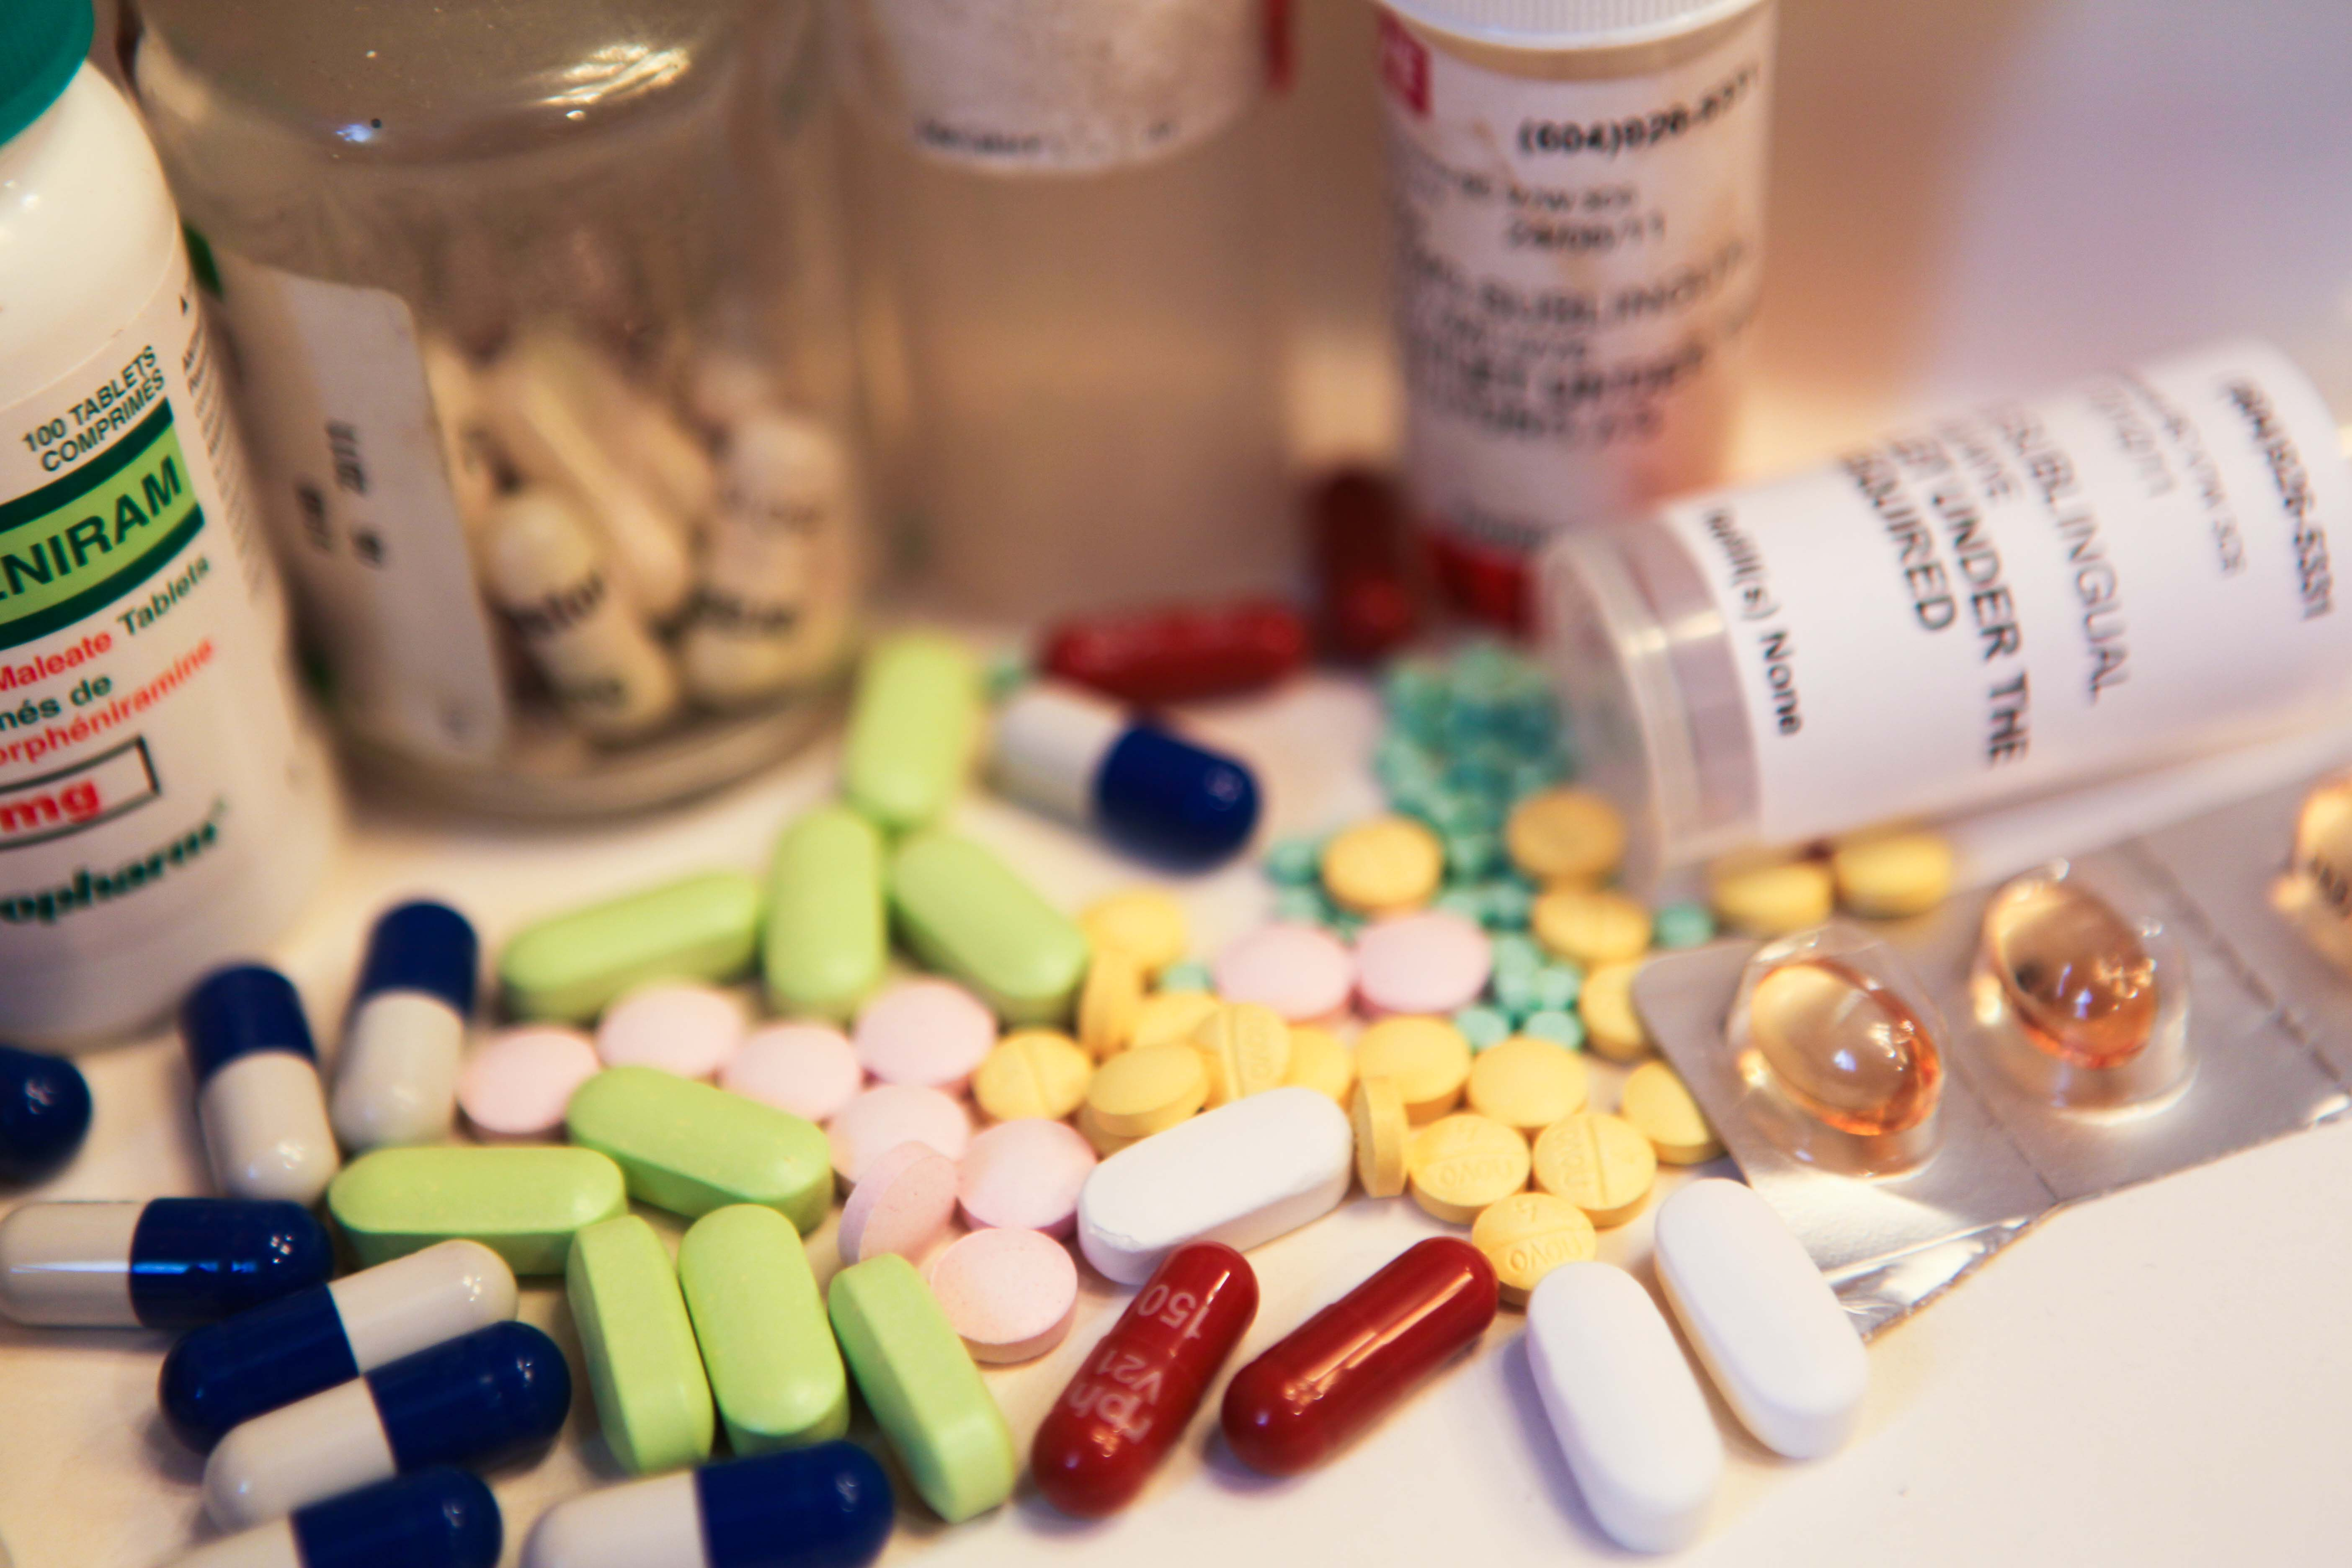 Medicinal drugs addiction